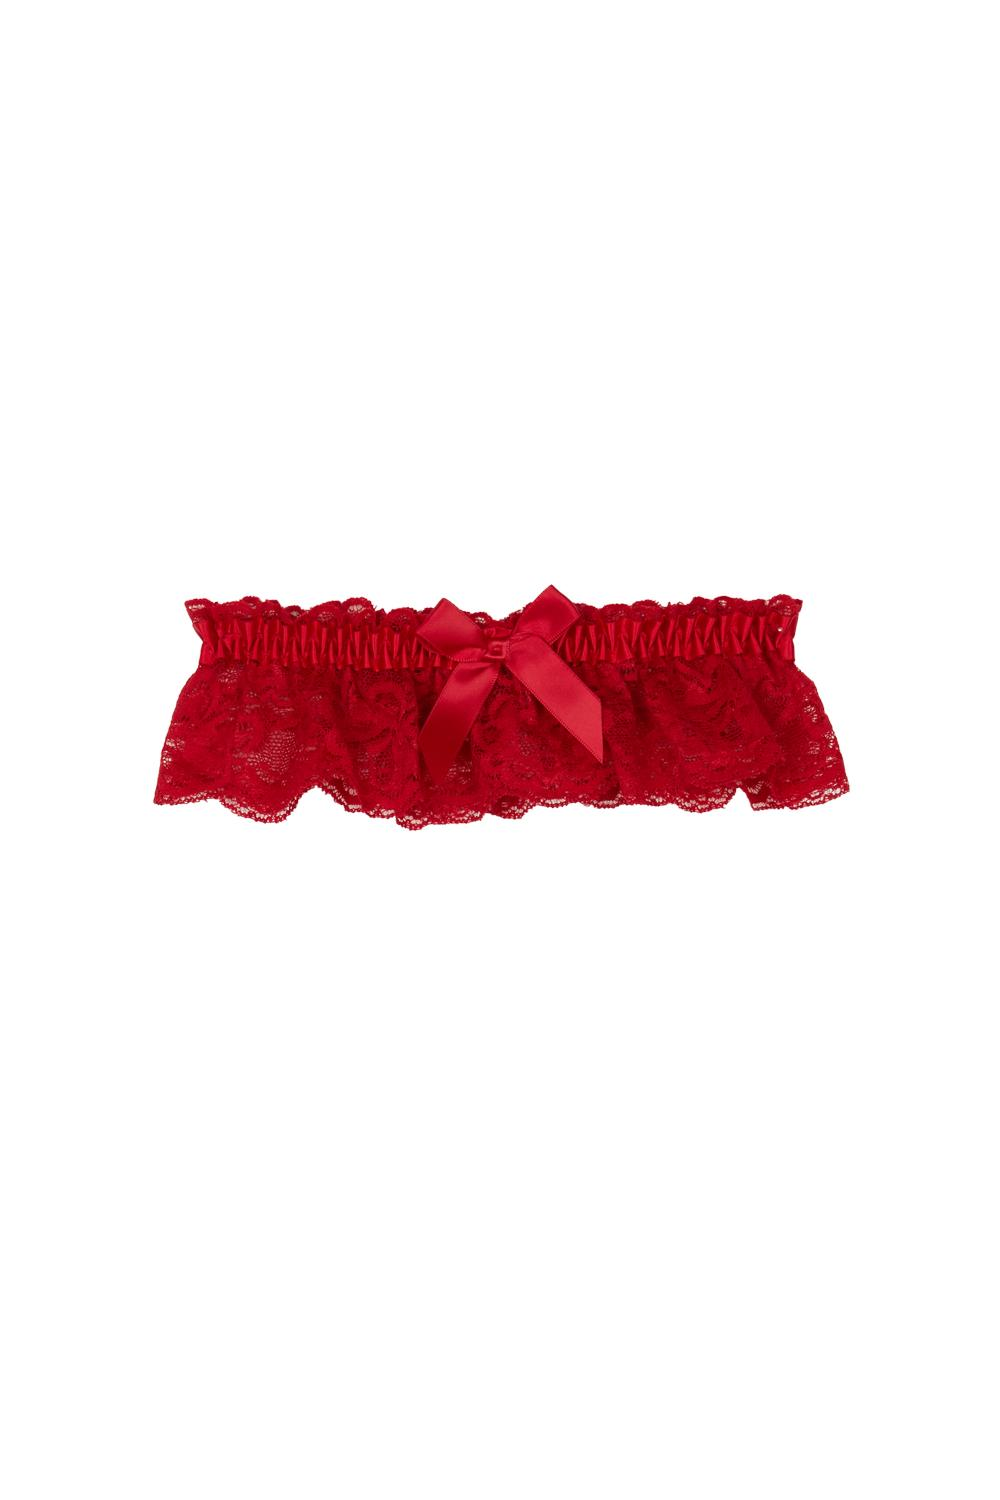 Lace and Satin Garter